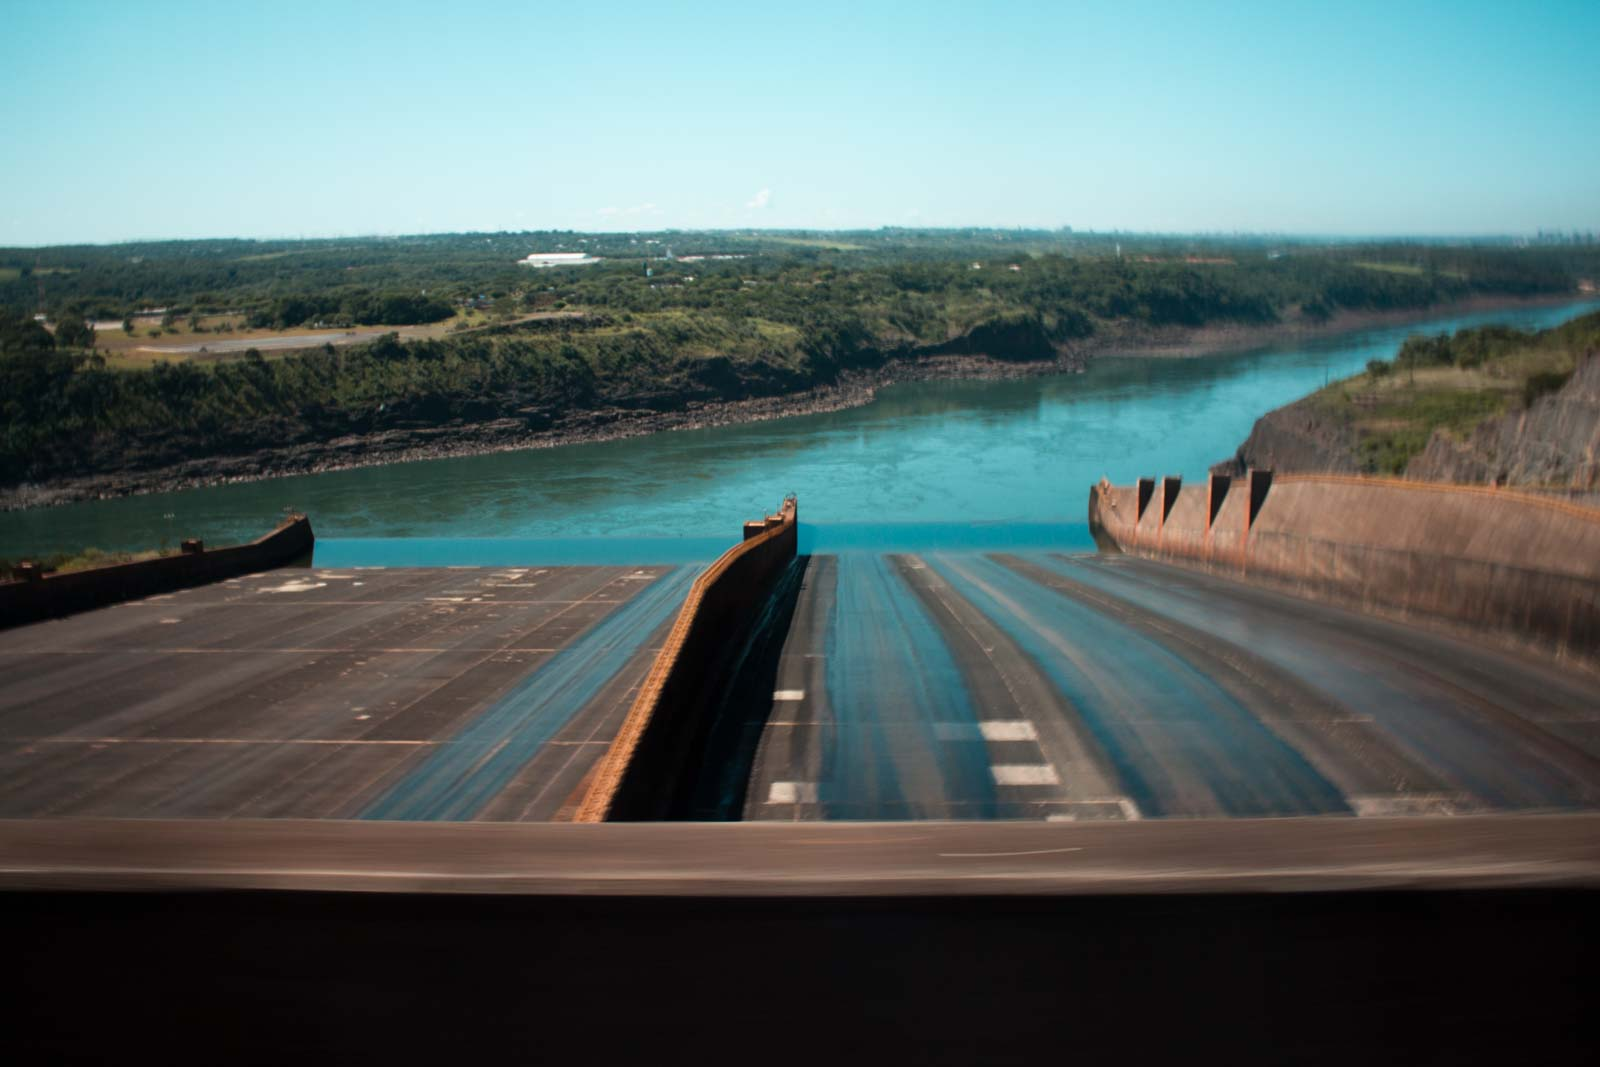 visiting itaipu dam in paraguay, the biggest dam in the world